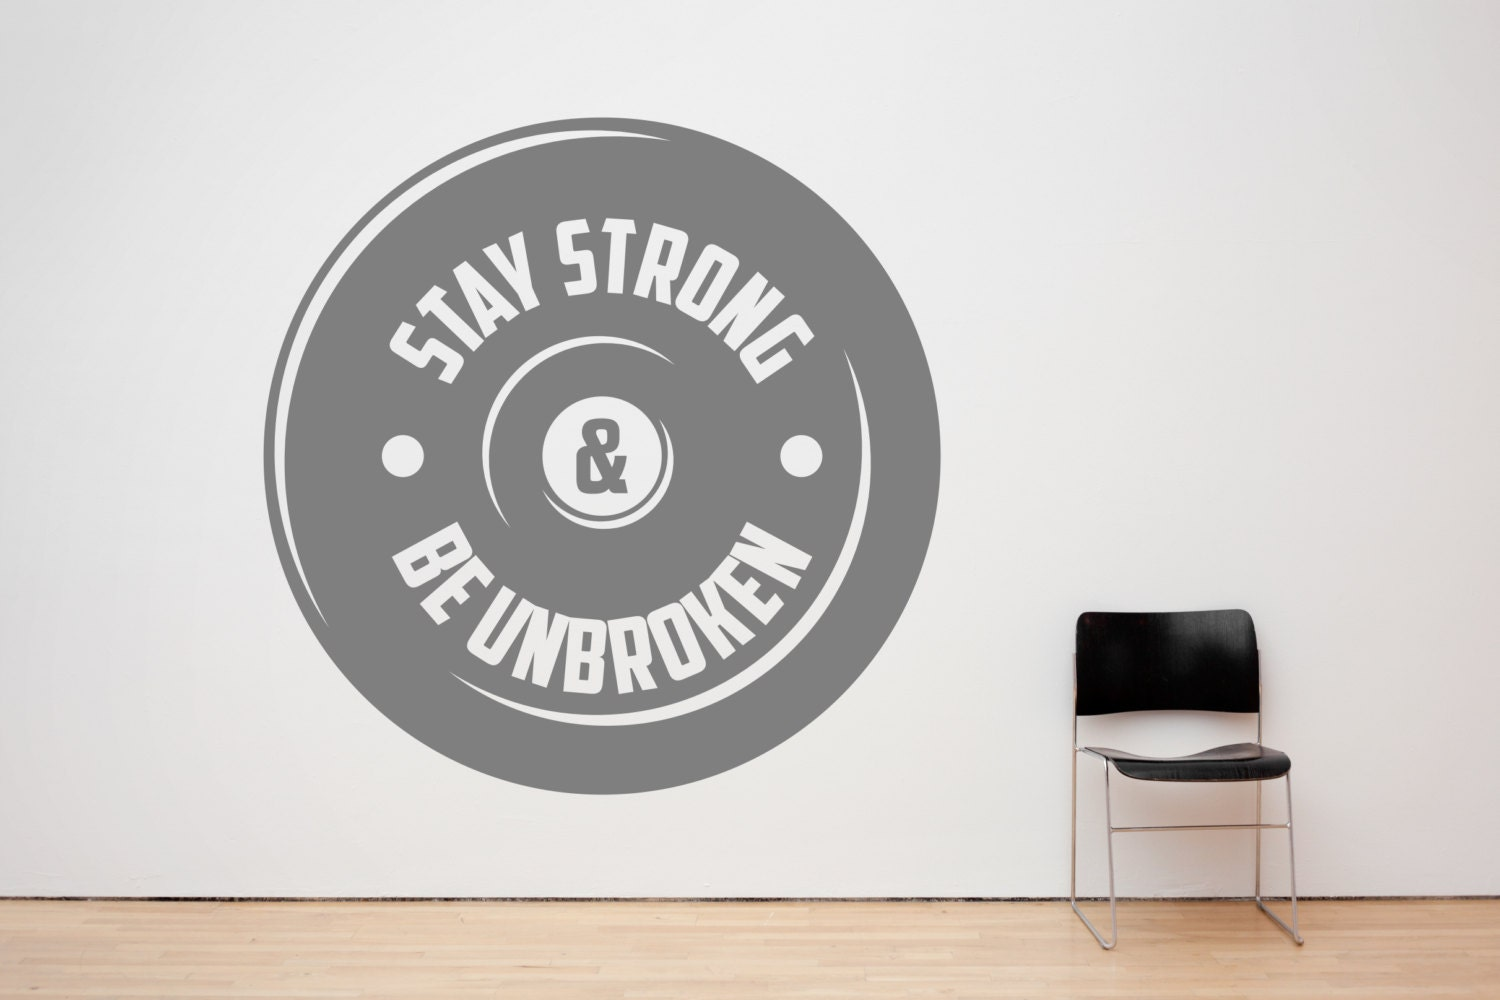 Stay Strong Amp Be Unbroken Motivational Gym Decal Sign Sticker